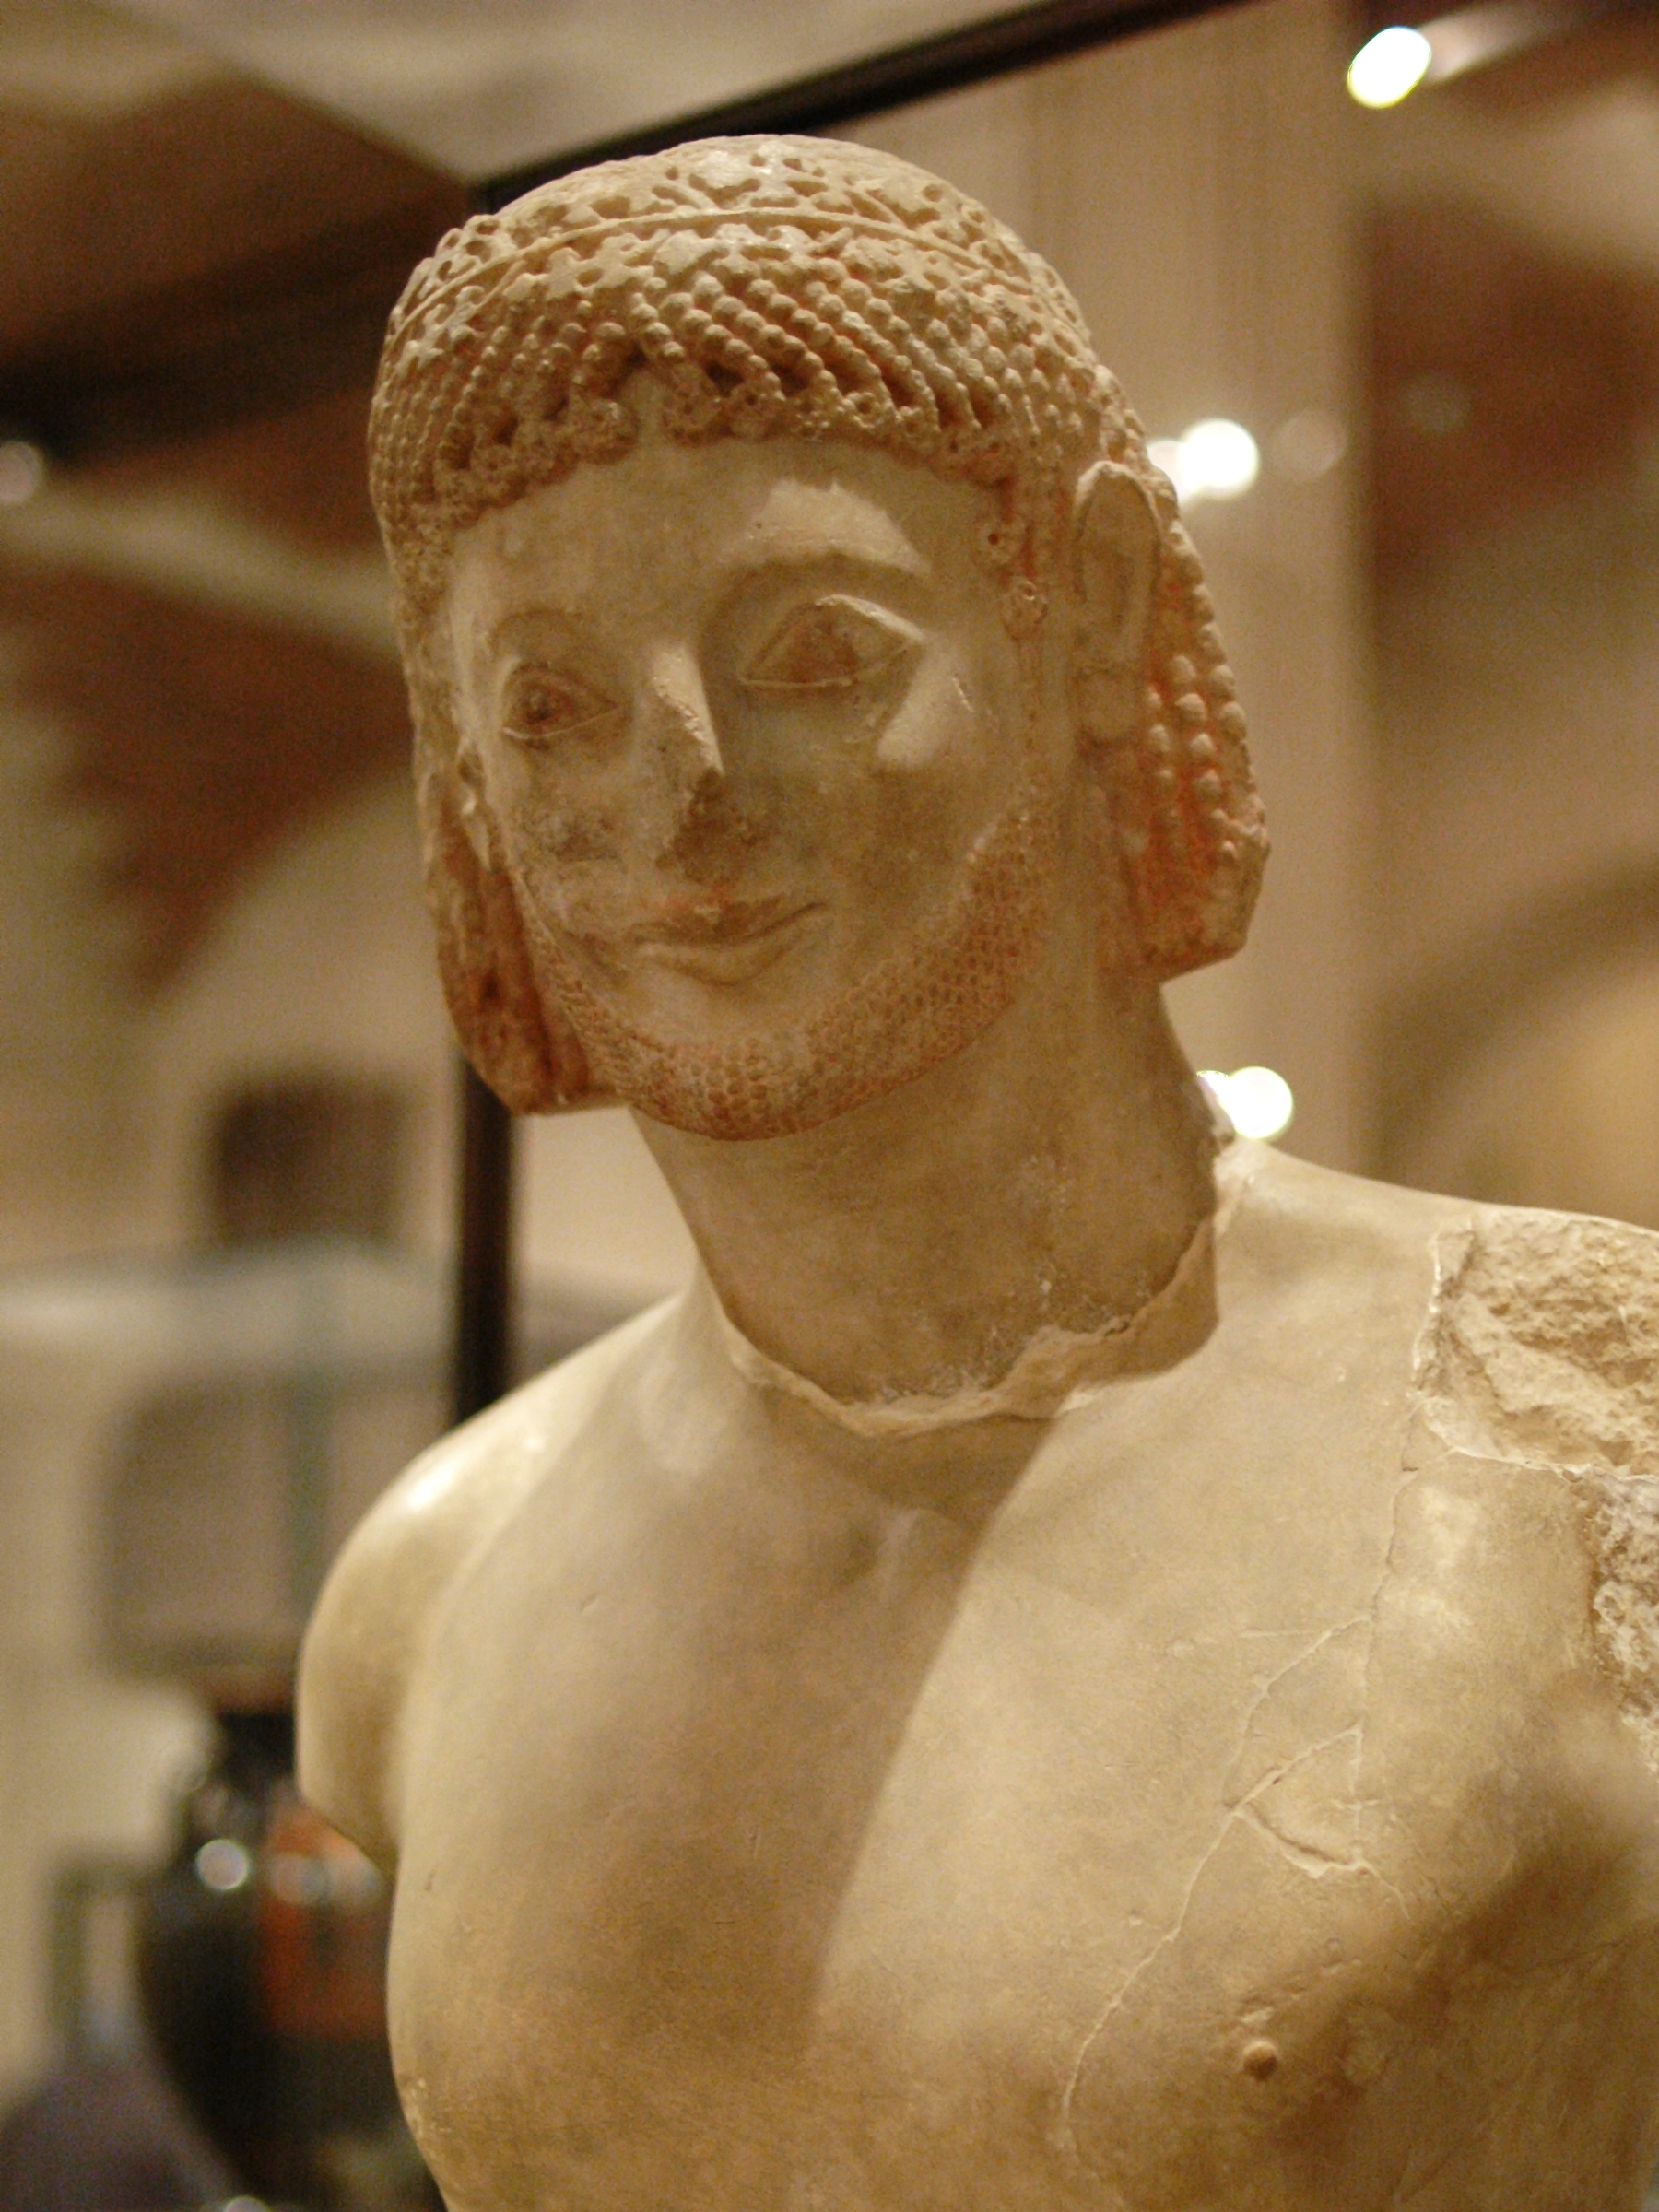 https://i0.wp.com/upload.wikimedia.org/wikipedia/commons/5/5e/Rampin_rider_Louvre_Ma3104.jpg